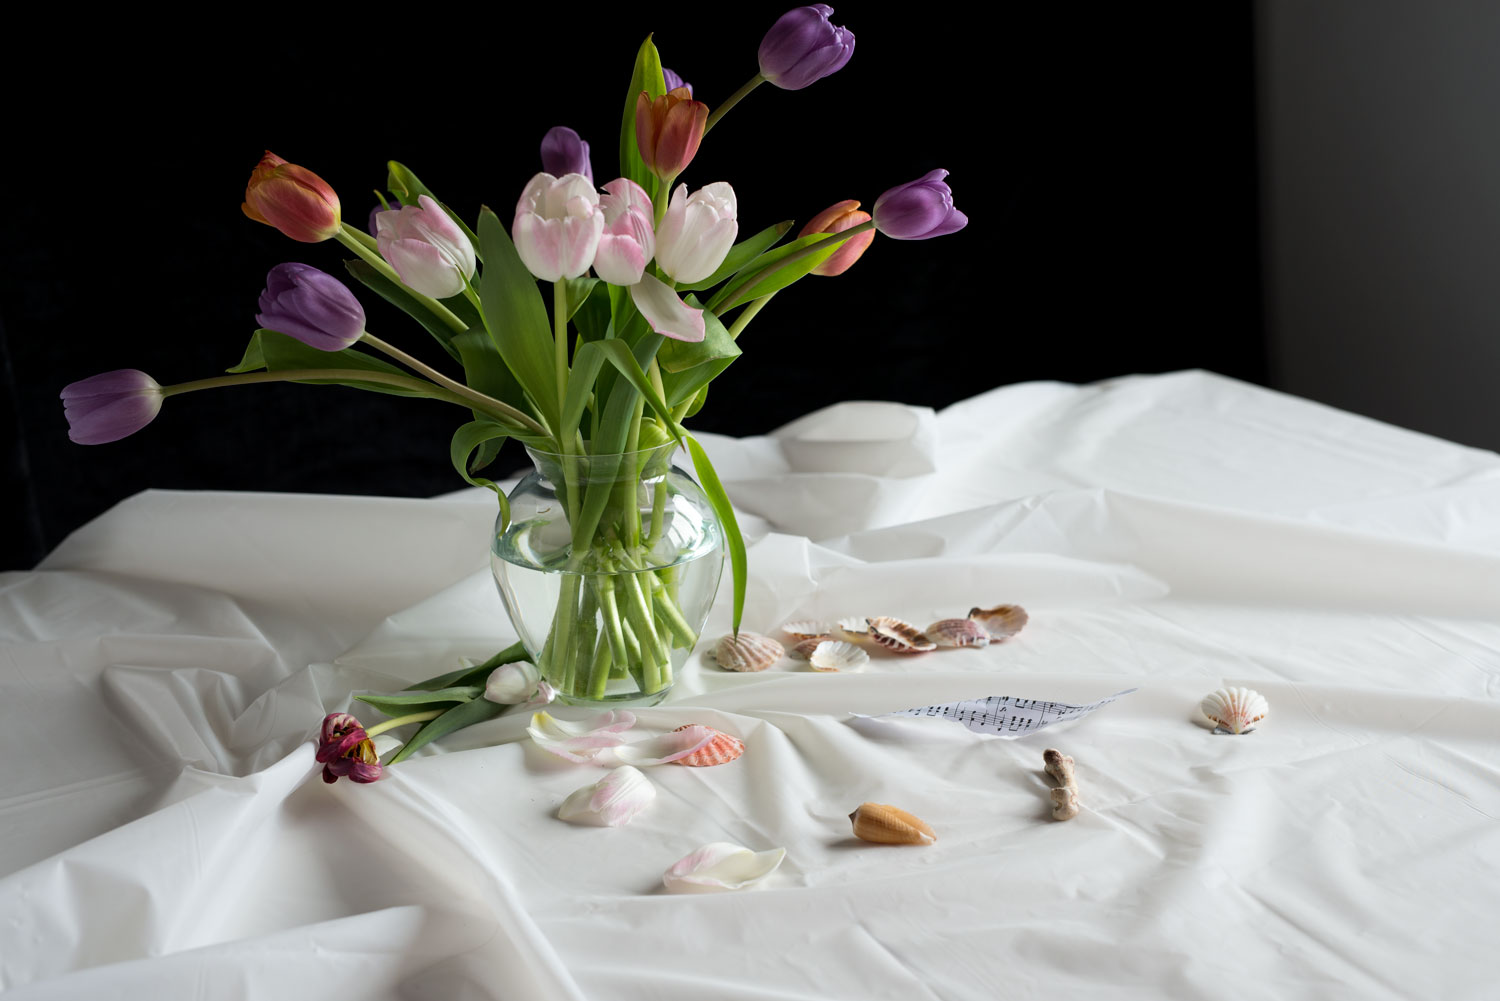 A vase of dying tulips on a white table cloth with shells and a bone in front